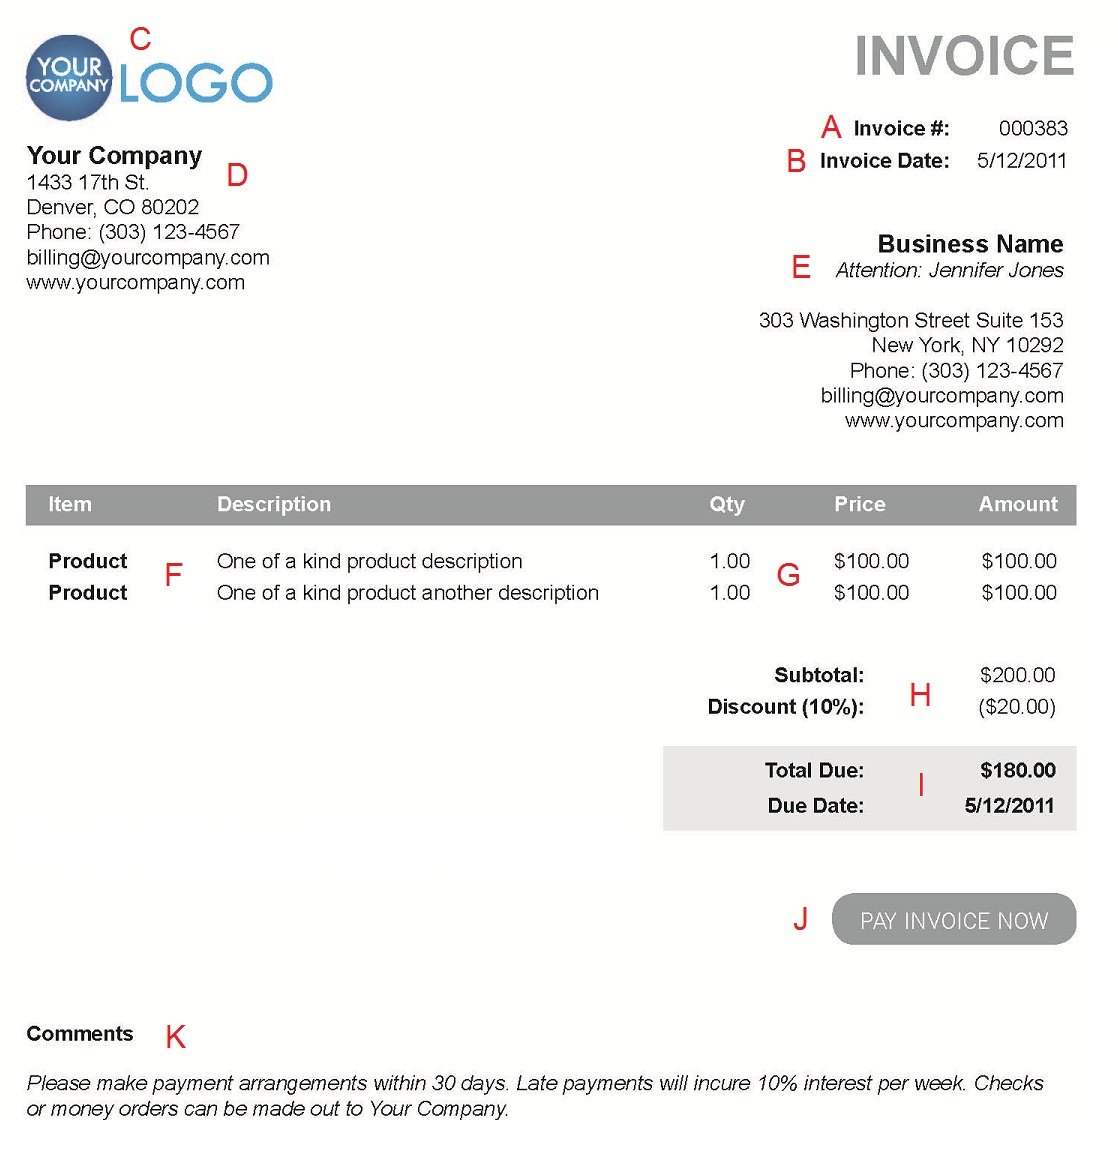 Opposenewapstandardsus  Sweet The  Different Sections Of An Electronic Payment Invoice With Lovable A  With Extraordinary Quickbooks Cancel Invoice Also Namecheap Invoice In Addition Contractors Invoices Free Templates And Send Invoice On Ebay As Well As Tax Invoice Rules Additionally Easy Invoice Template From Paysimplecom With Opposenewapstandardsus  Lovable The  Different Sections Of An Electronic Payment Invoice With Extraordinary A  And Sweet Quickbooks Cancel Invoice Also Namecheap Invoice In Addition Contractors Invoices Free Templates From Paysimplecom